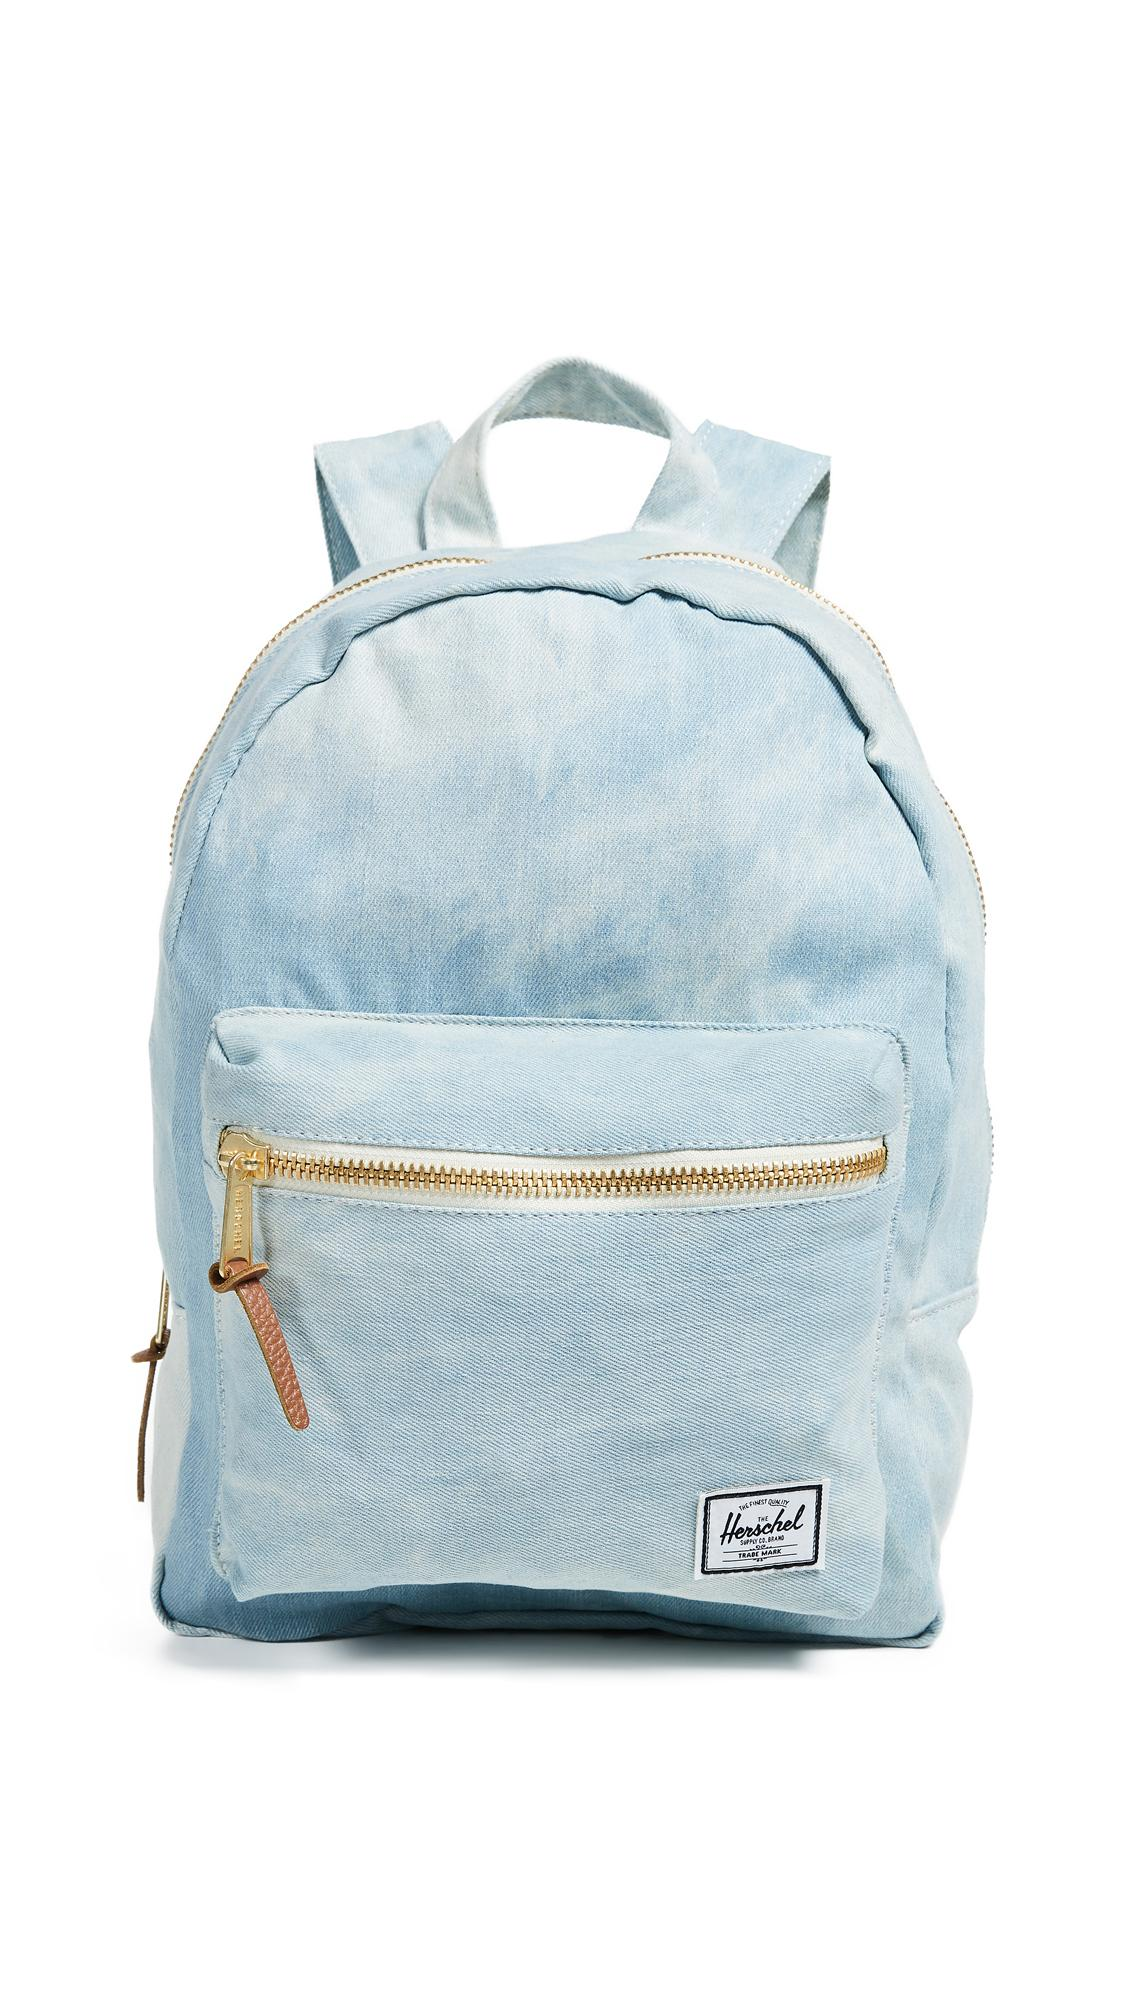 60f7d098a66 Herschel Supply Co. Grove Xs Backpack In Bleached Denim